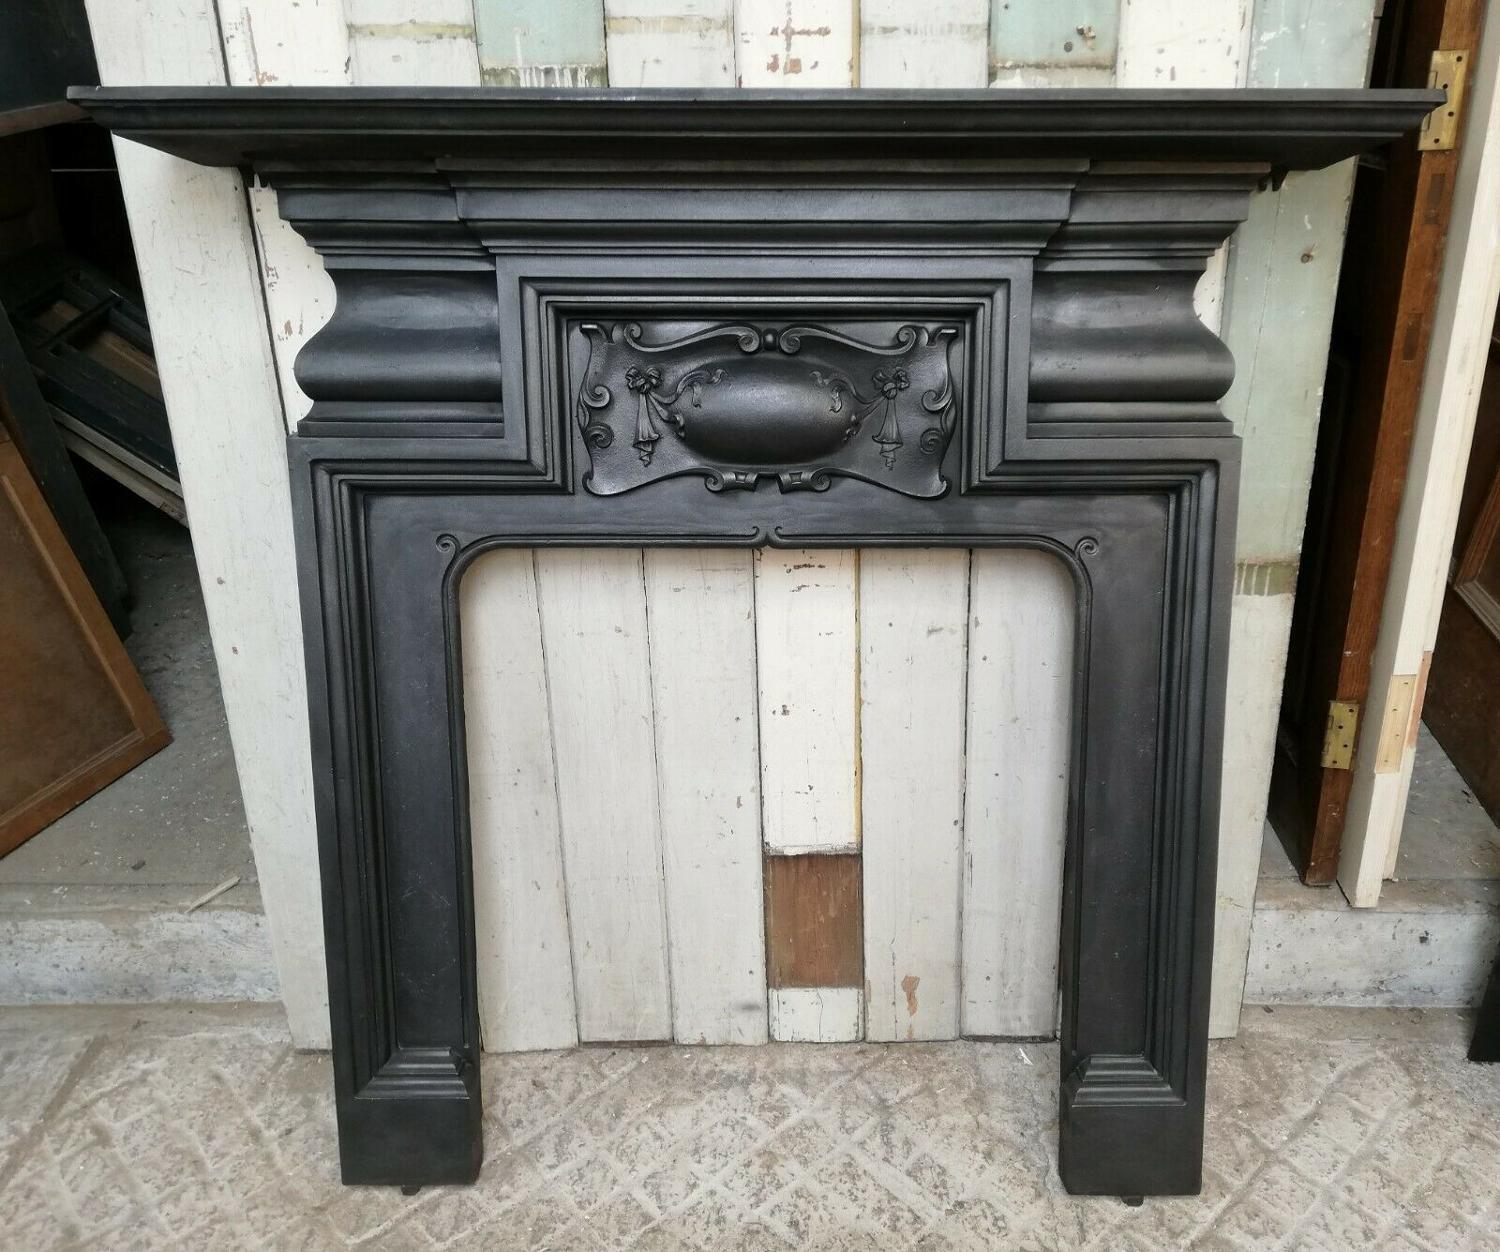 FS0070 ELEGANT LARGE VICTORIAN CAST IRON FIRE SURROUND FOR WOODBURNER